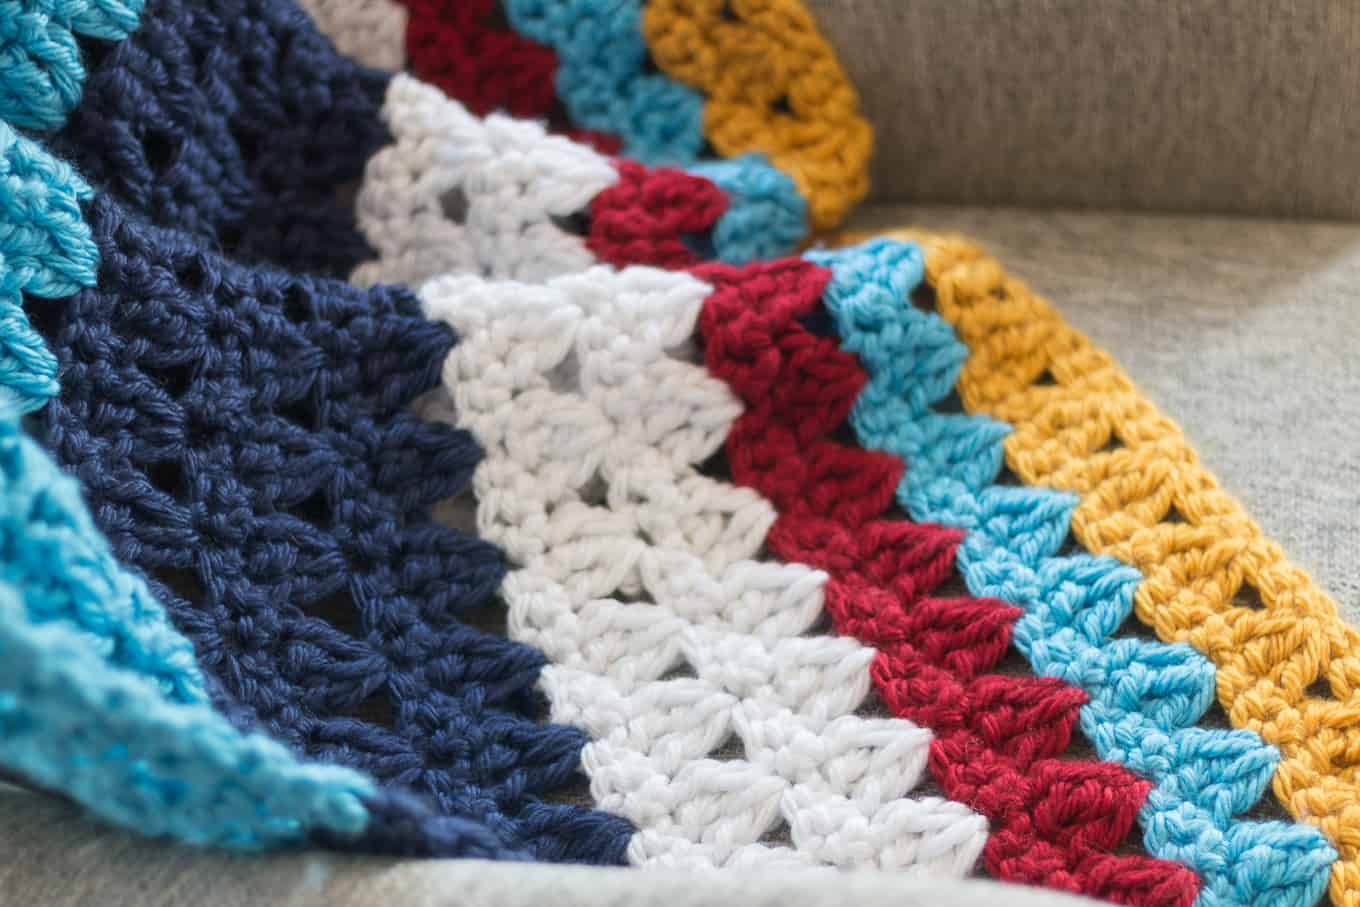 Crochet Throw Blanket Pattern in Bright Colors